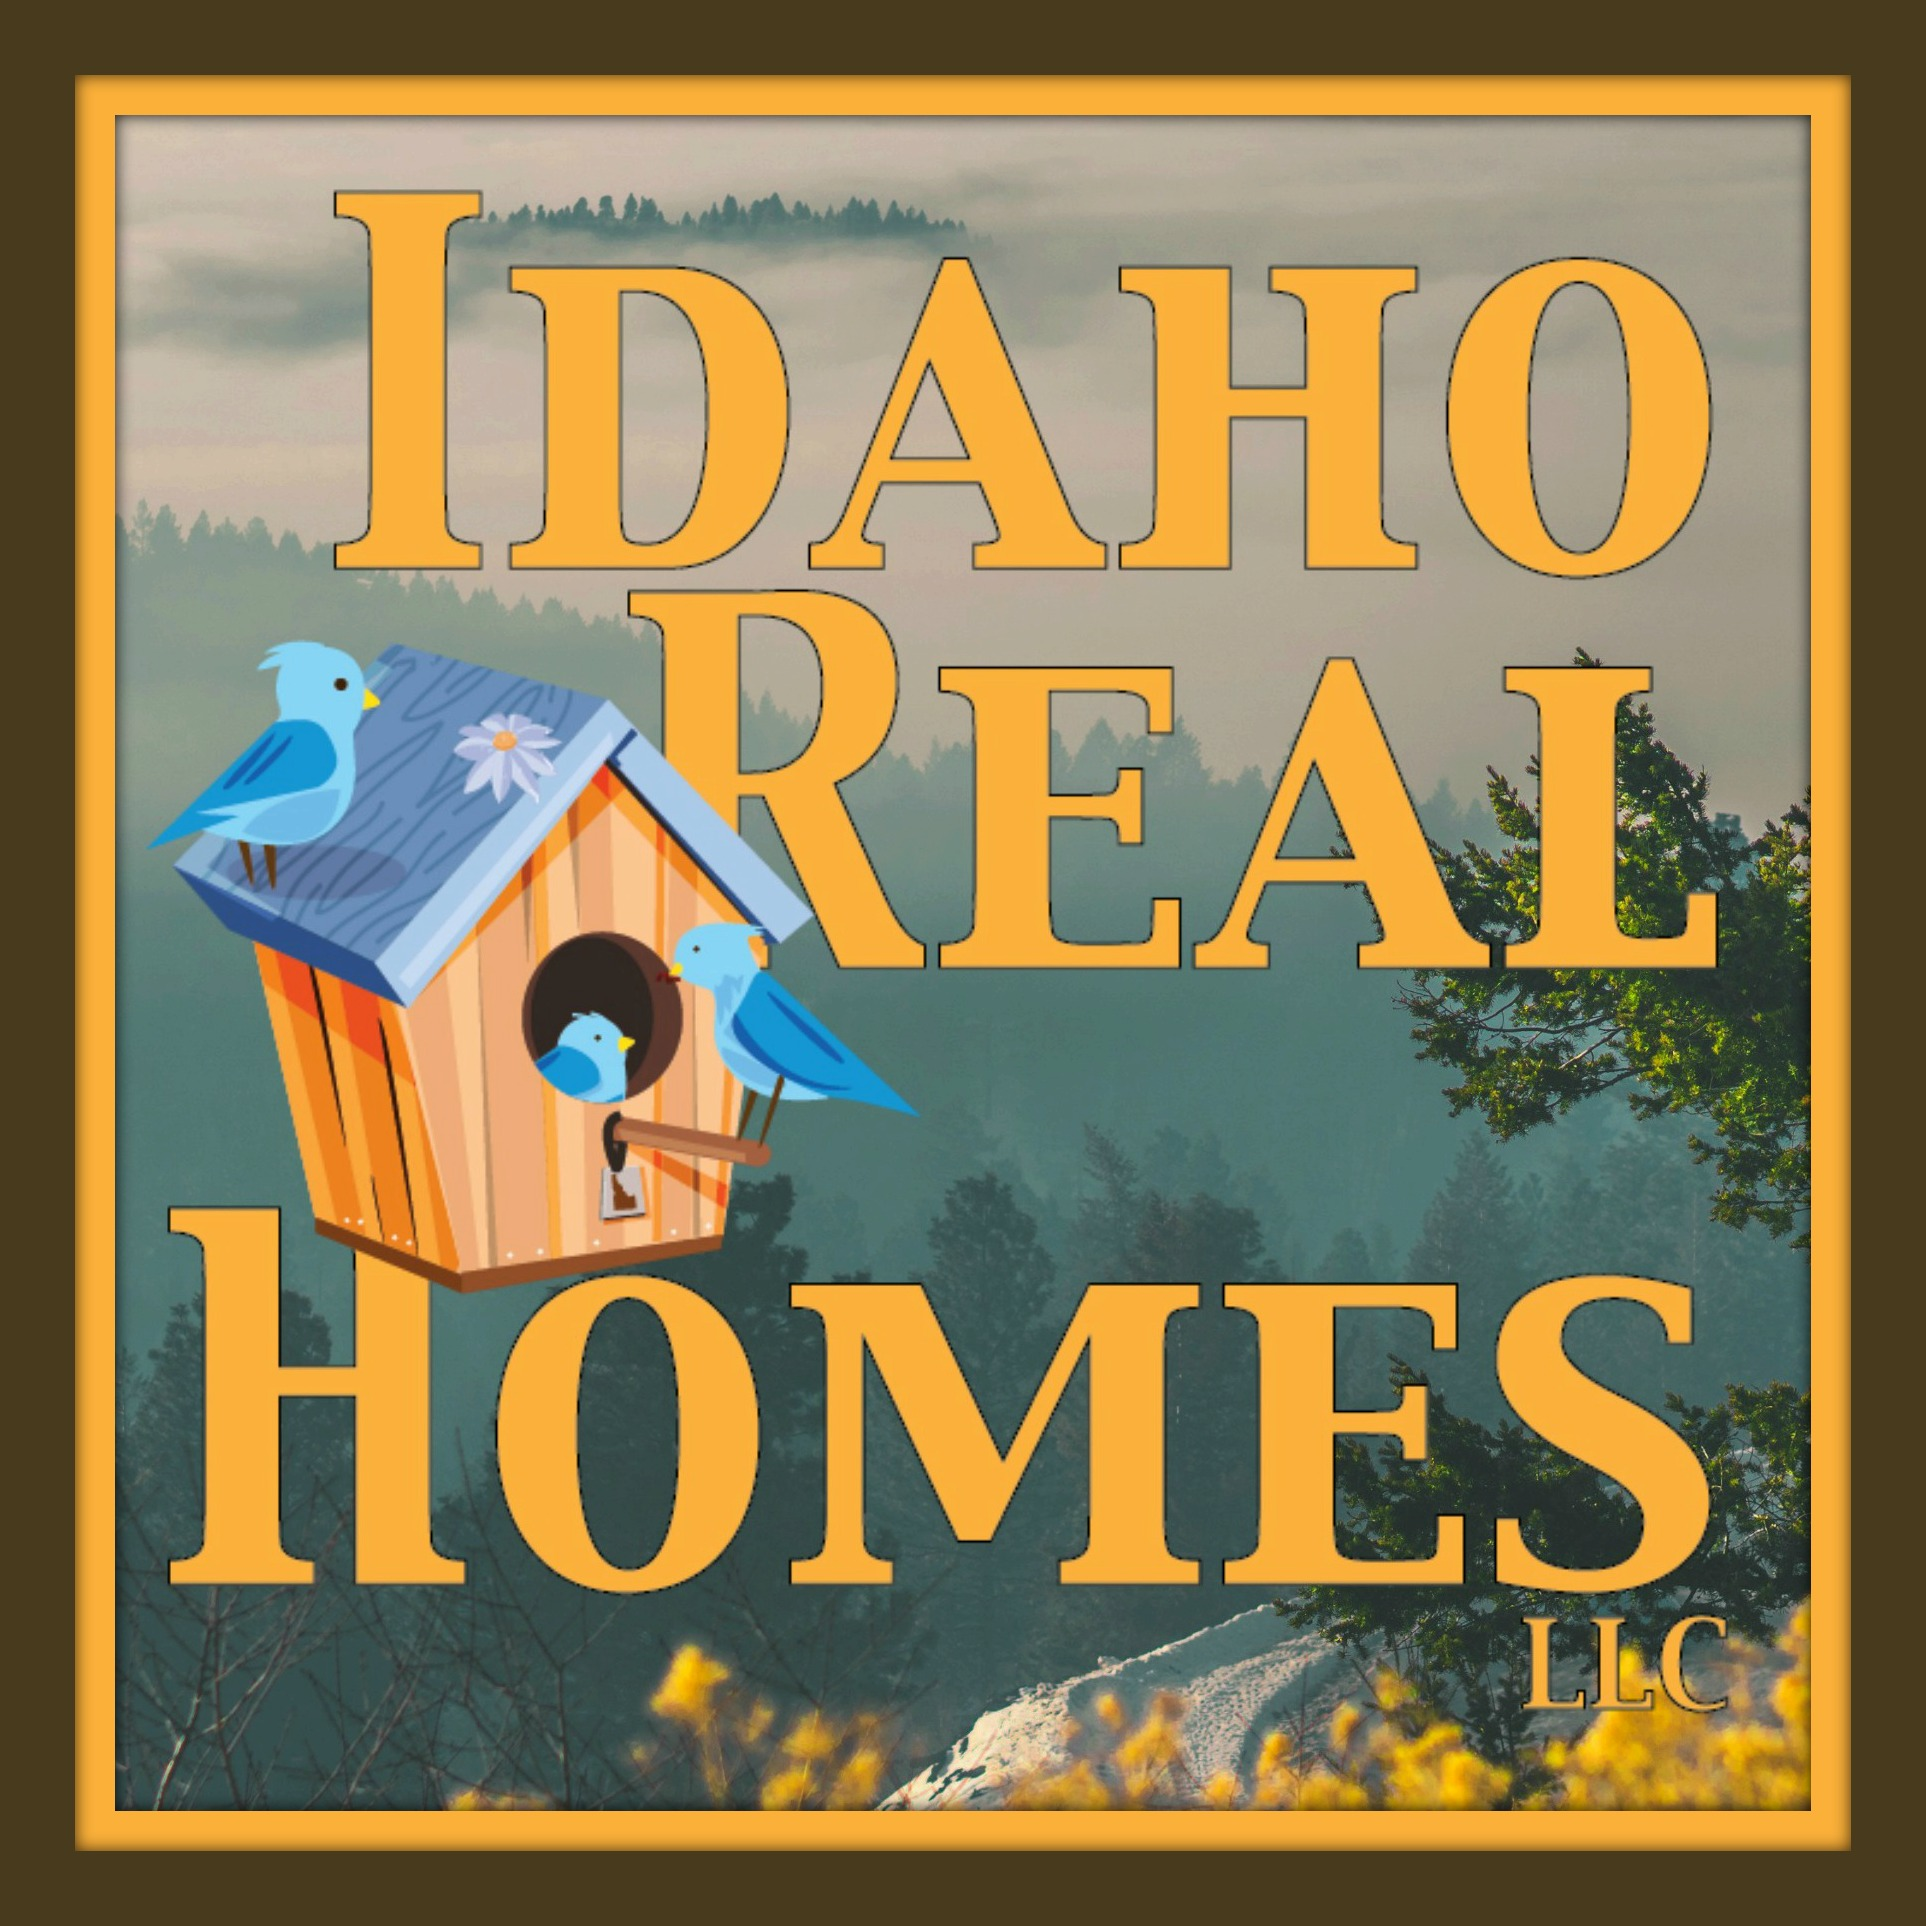 Idaho Real Homes LLC 1315 W Biztown Loop, Hayden, Id 83835. 208-719-9010